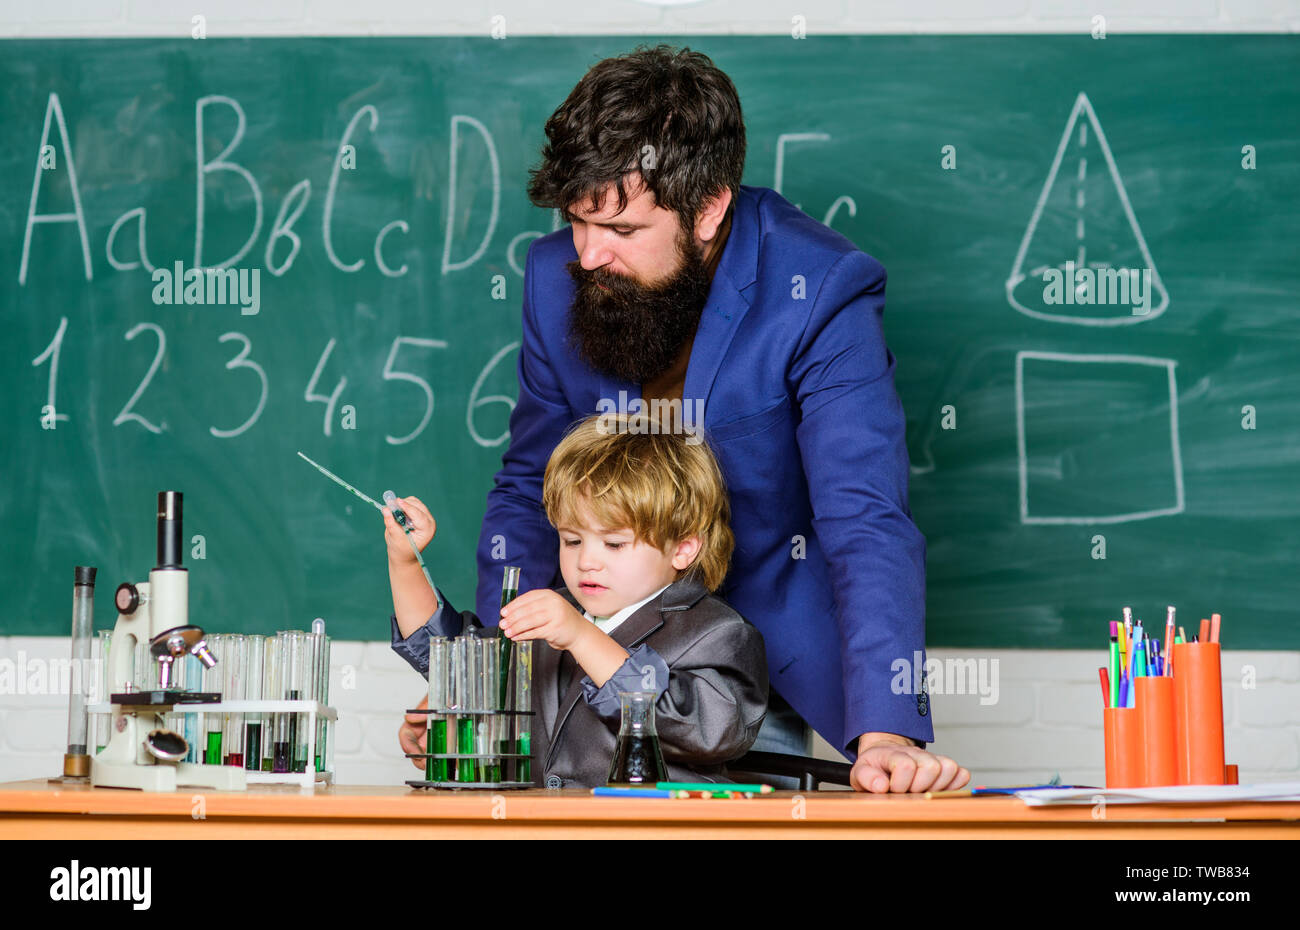 bearded man teacher with little boy. father and son at school. Pupil kid in the chemistry class confidence charisma. Back to school. Science chemistry concept. Focused on exam. - Stock Image